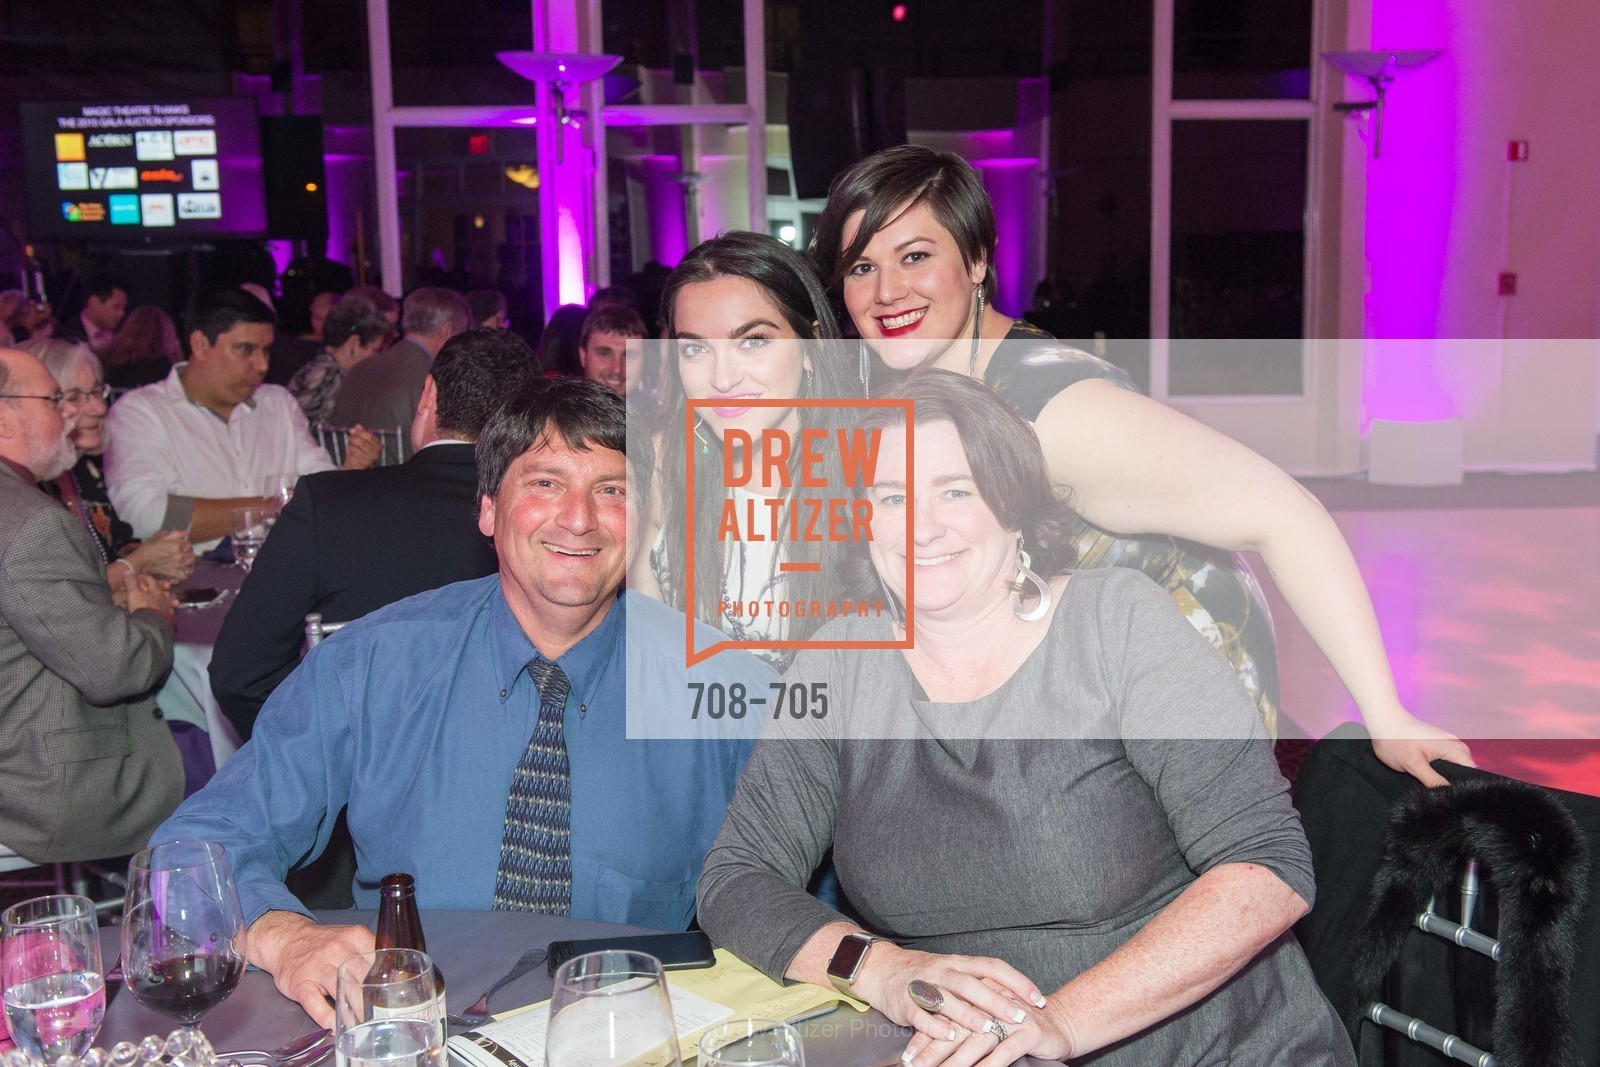 Hanz Saier, Marilee Saier, Lindsay Saier, Gabrielle Pizarro, MAGIC THEATRE'S 2015 Gala:  A Night of Magic, US, May 7th, 2015,Drew Altizer, Drew Altizer Photography, full-service agency, private events, San Francisco photographer, photographer california